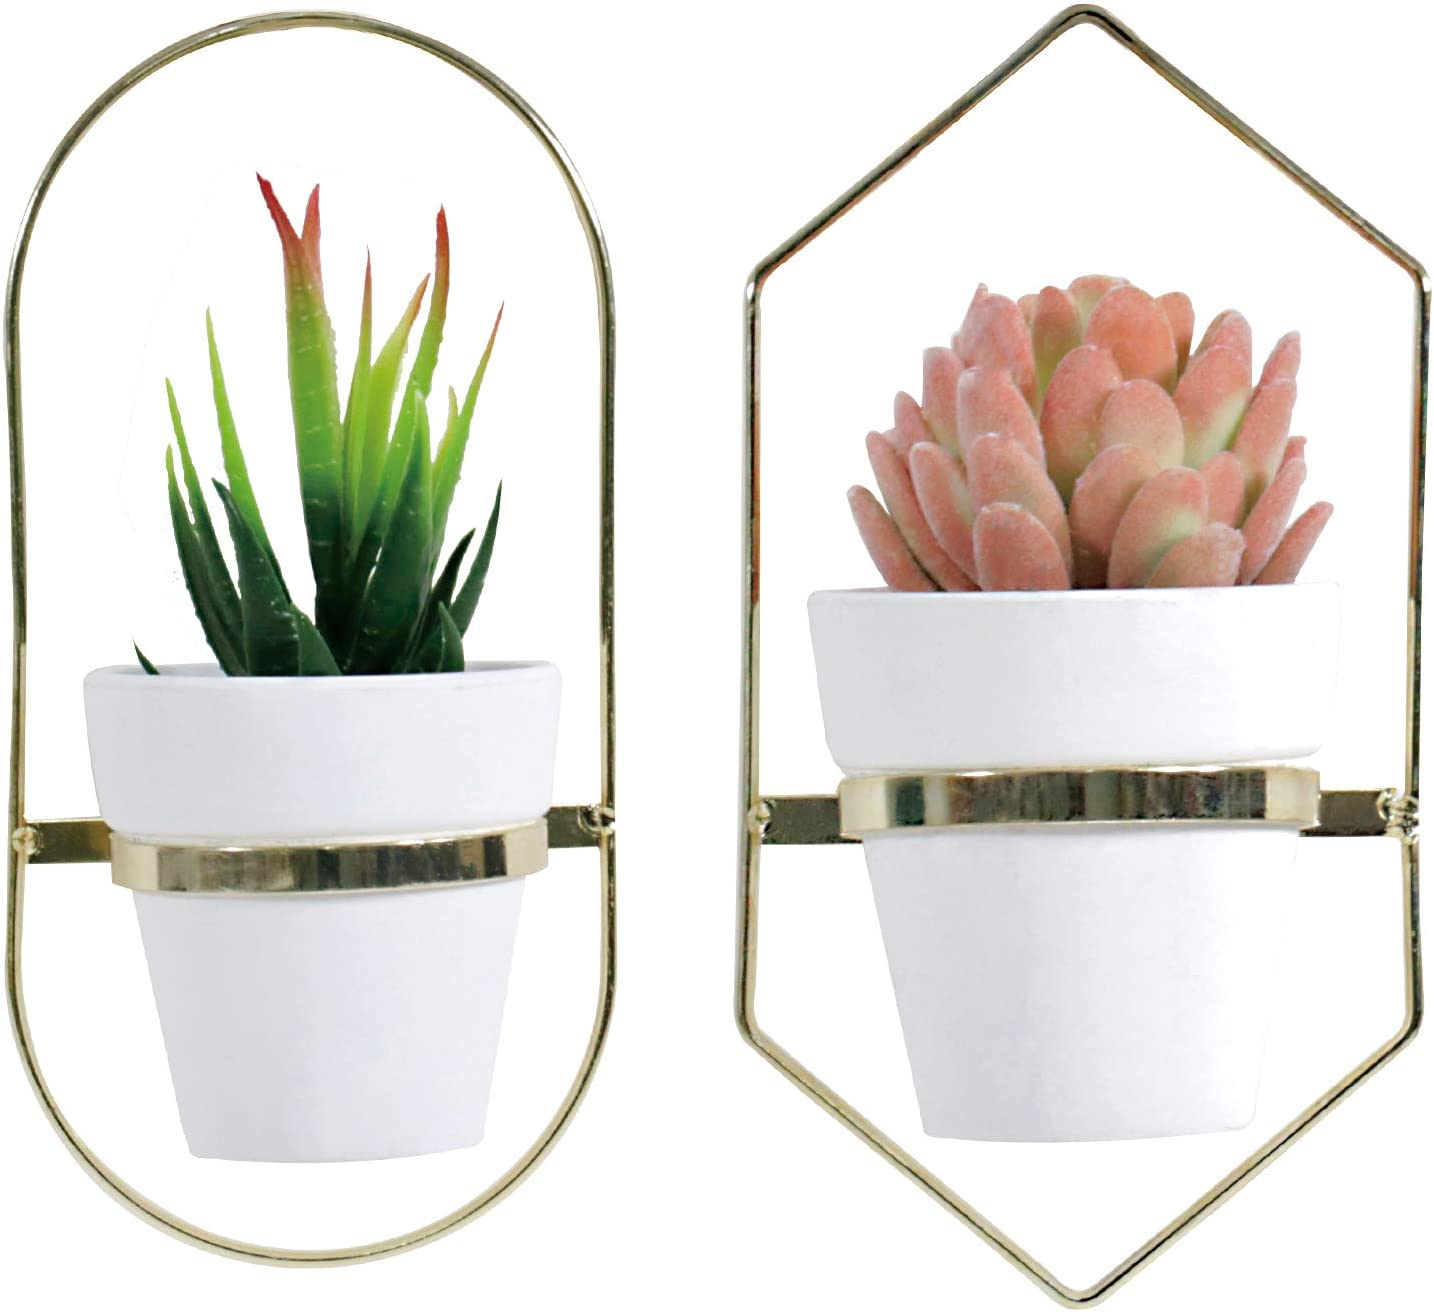 LITA Golden Metal Hanging Planter Clay Pots & White Geometric Wall Decor Container Hanging Planter Holder Modern Planter Flower Pot for Home Decor Indoor Outdoor Use, White/Clay Pots